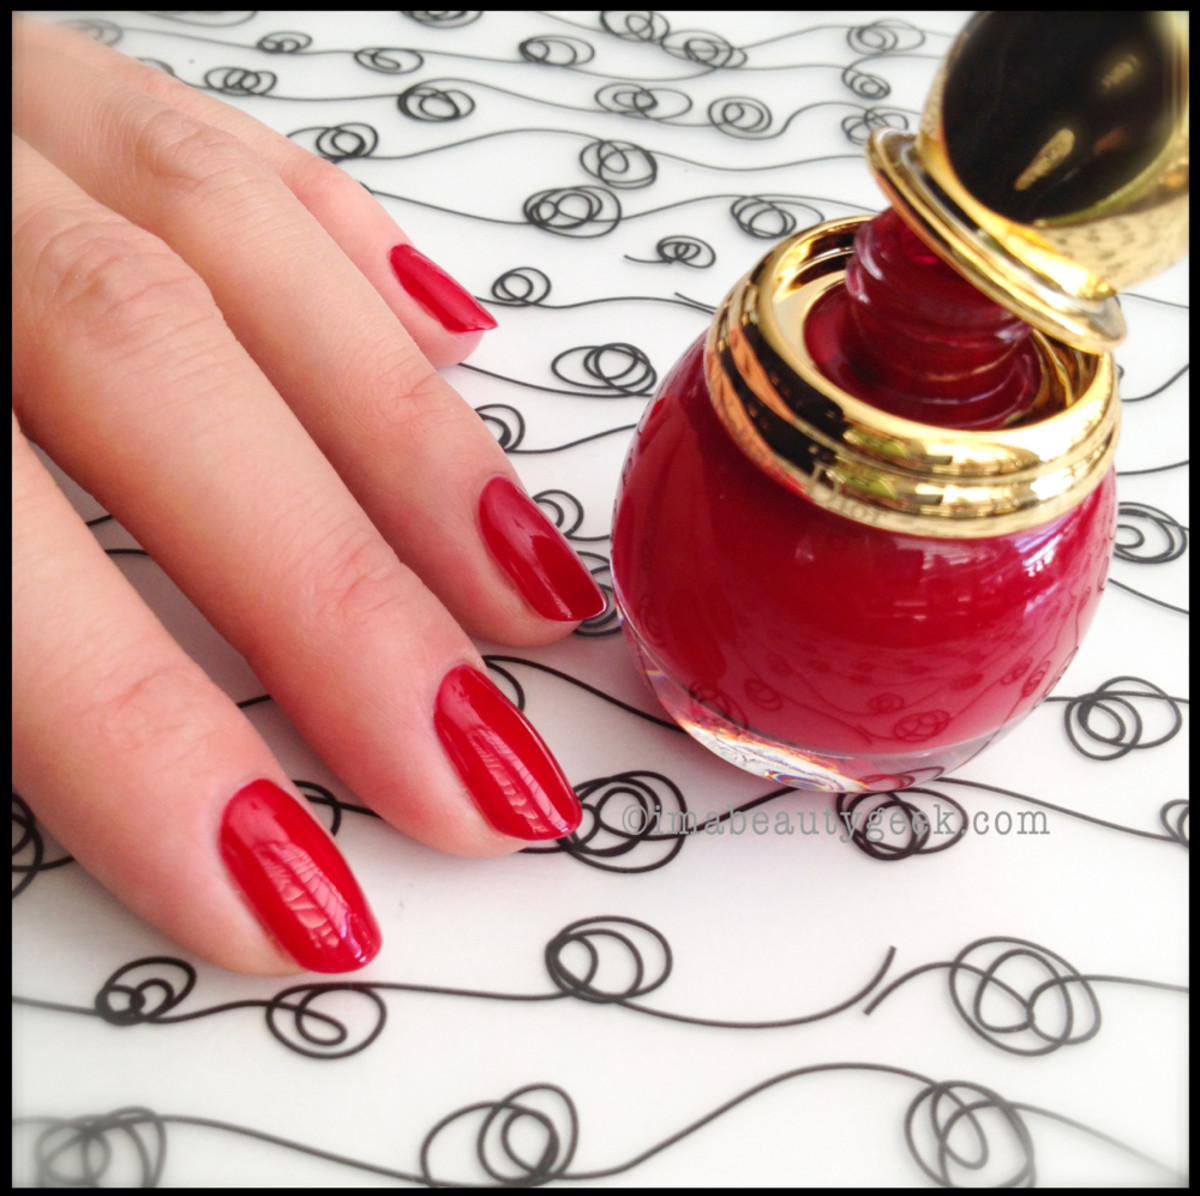 Dior Holiday 2013 Dior Diorific Vernis in Marilyn 1